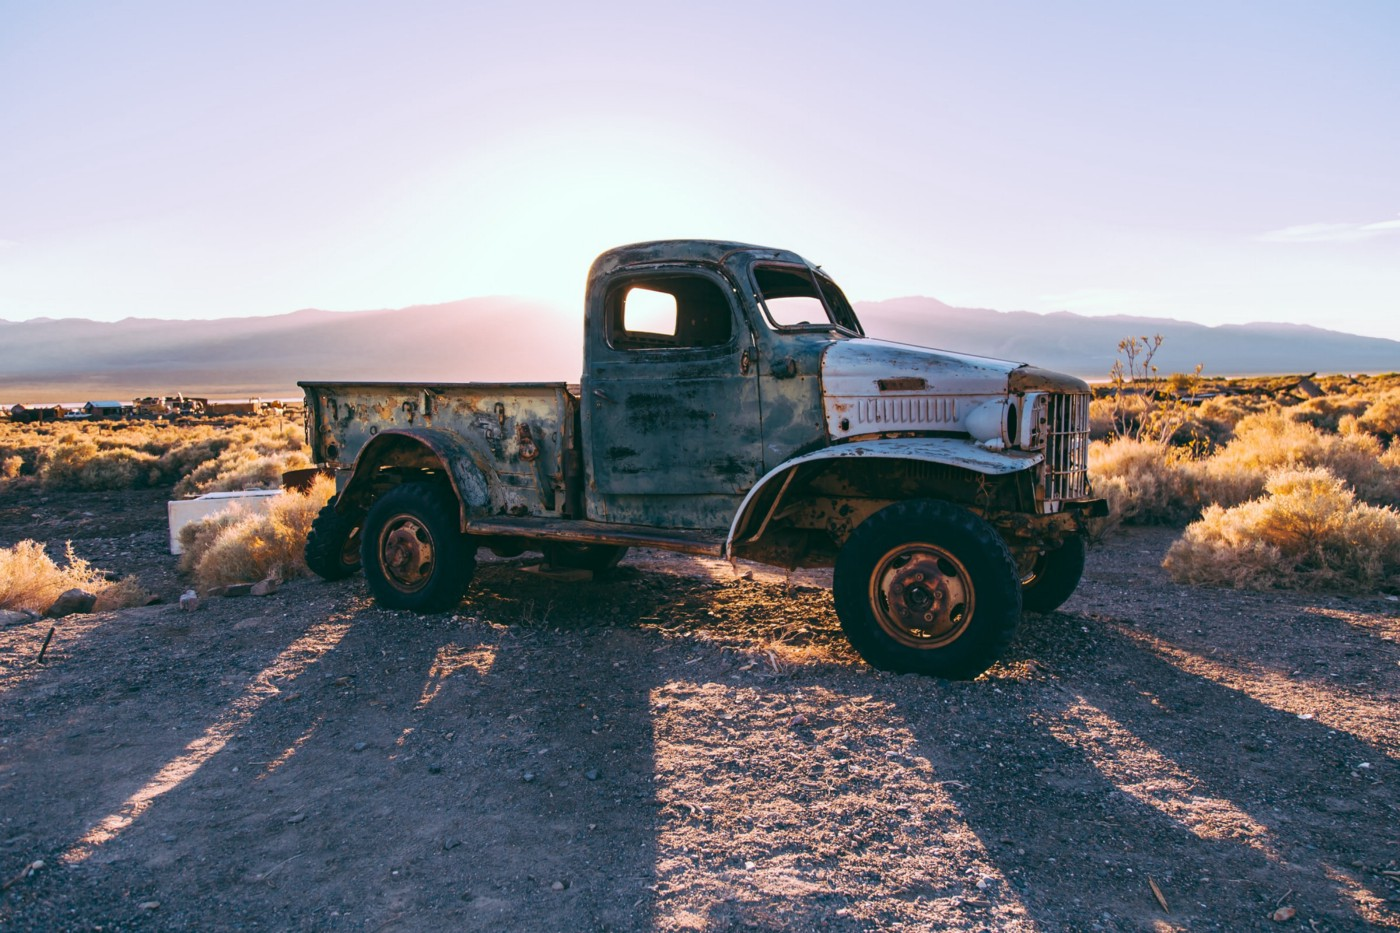 An old style grey single cab truck on scrub land with the low sun behind casting a long shadow.